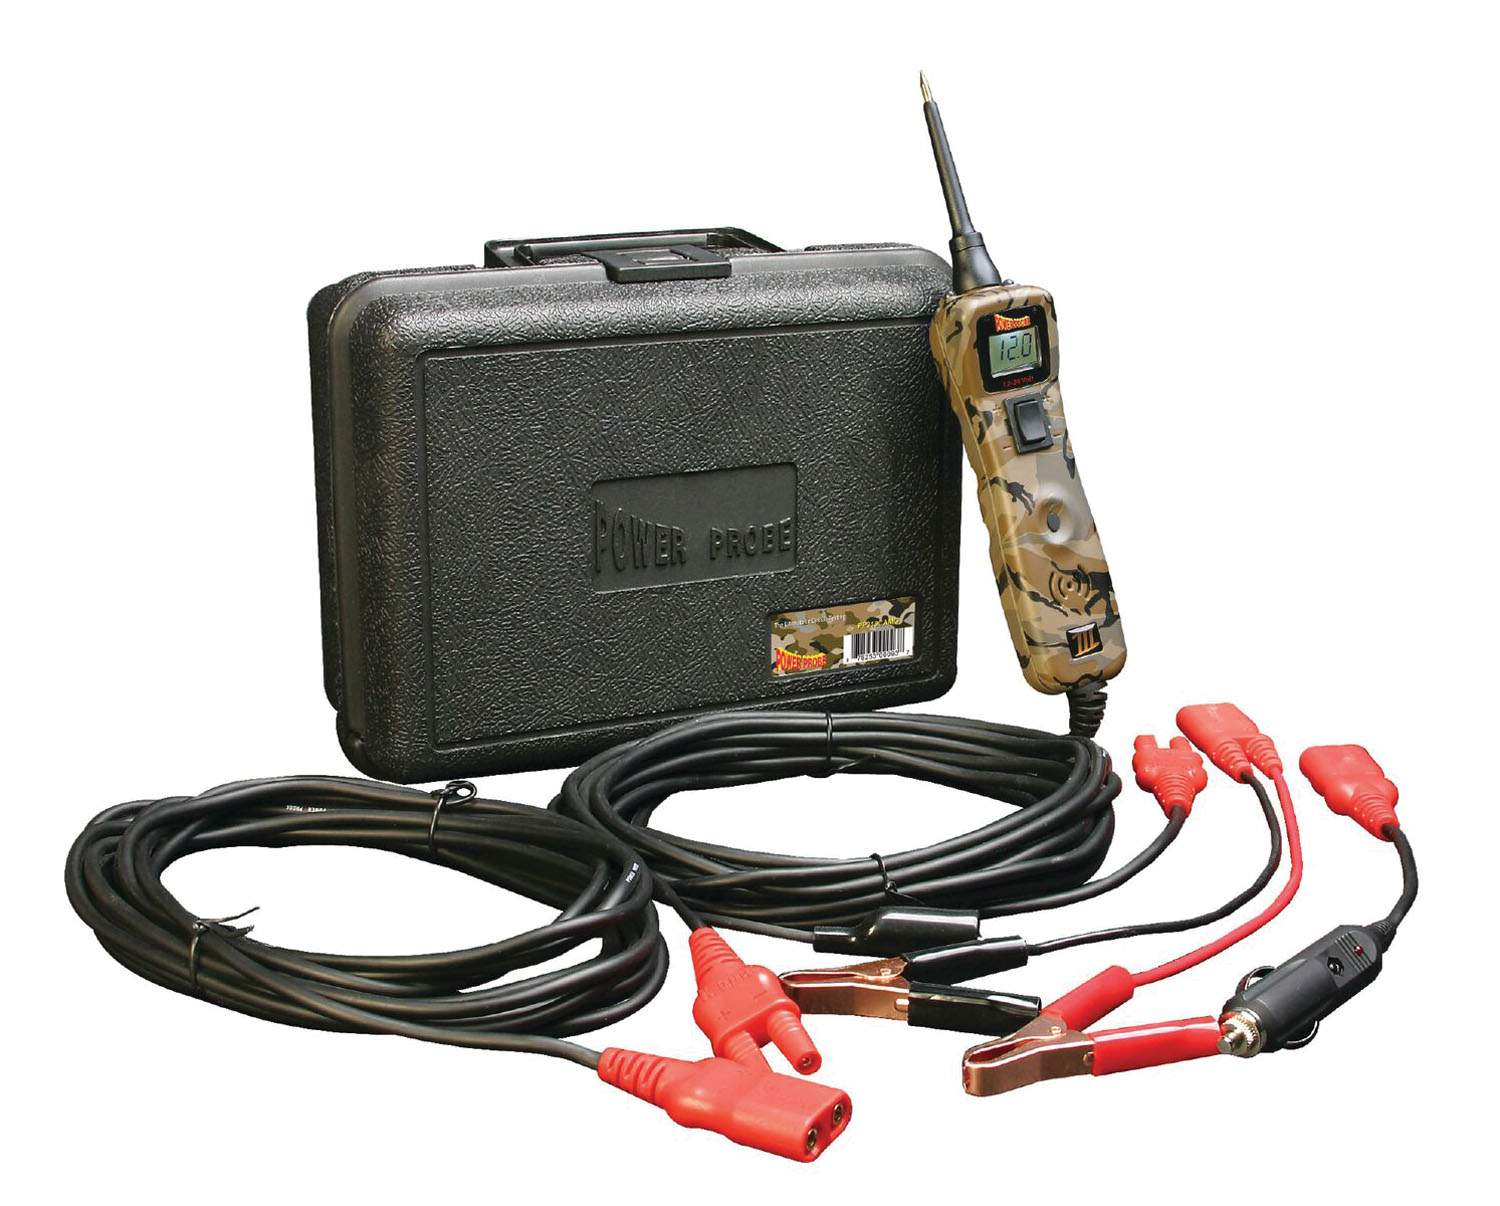 POWER PROBE III WITH CAMO DESIGN PPRPP319CAMO | Tool Discounter